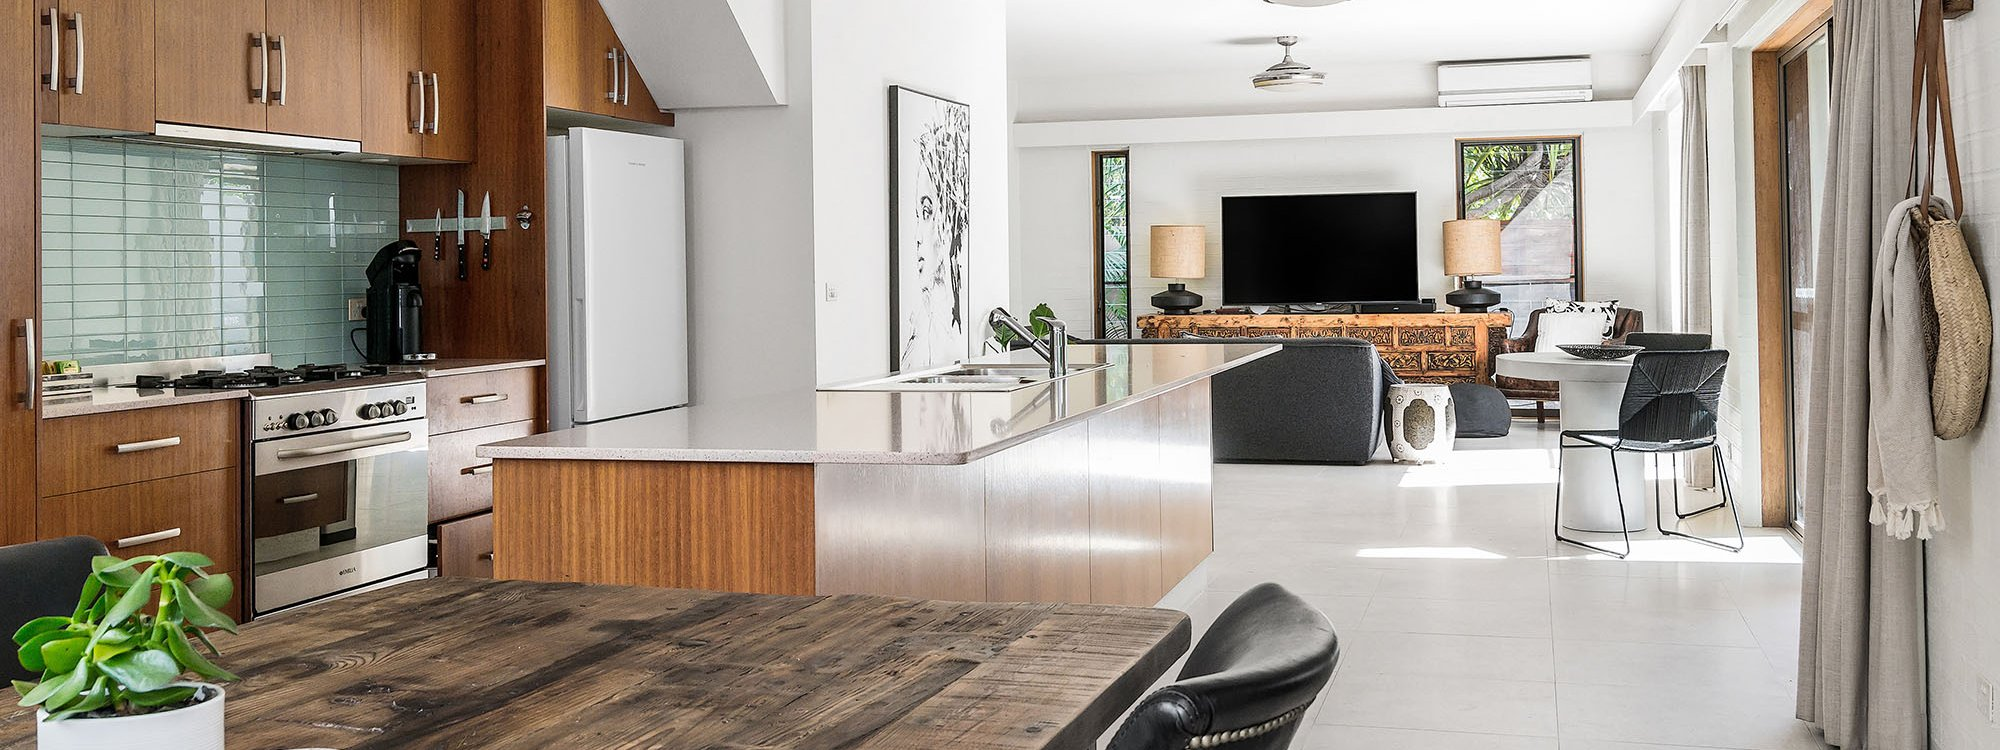 Bahari - Byron Bay - Kitchen and Living